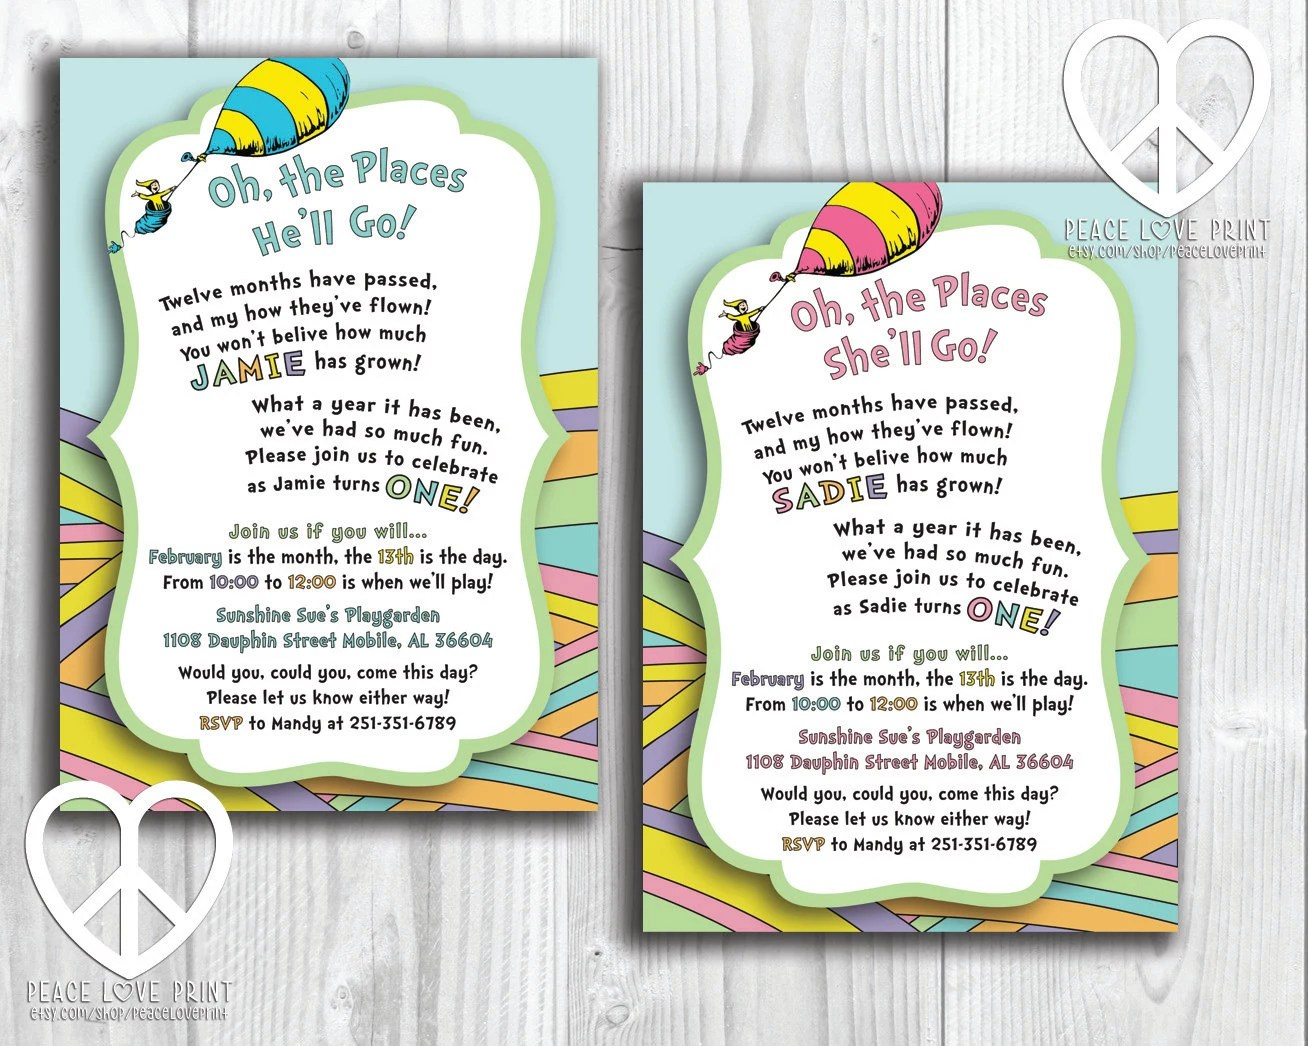 Places Get Invitations Printed